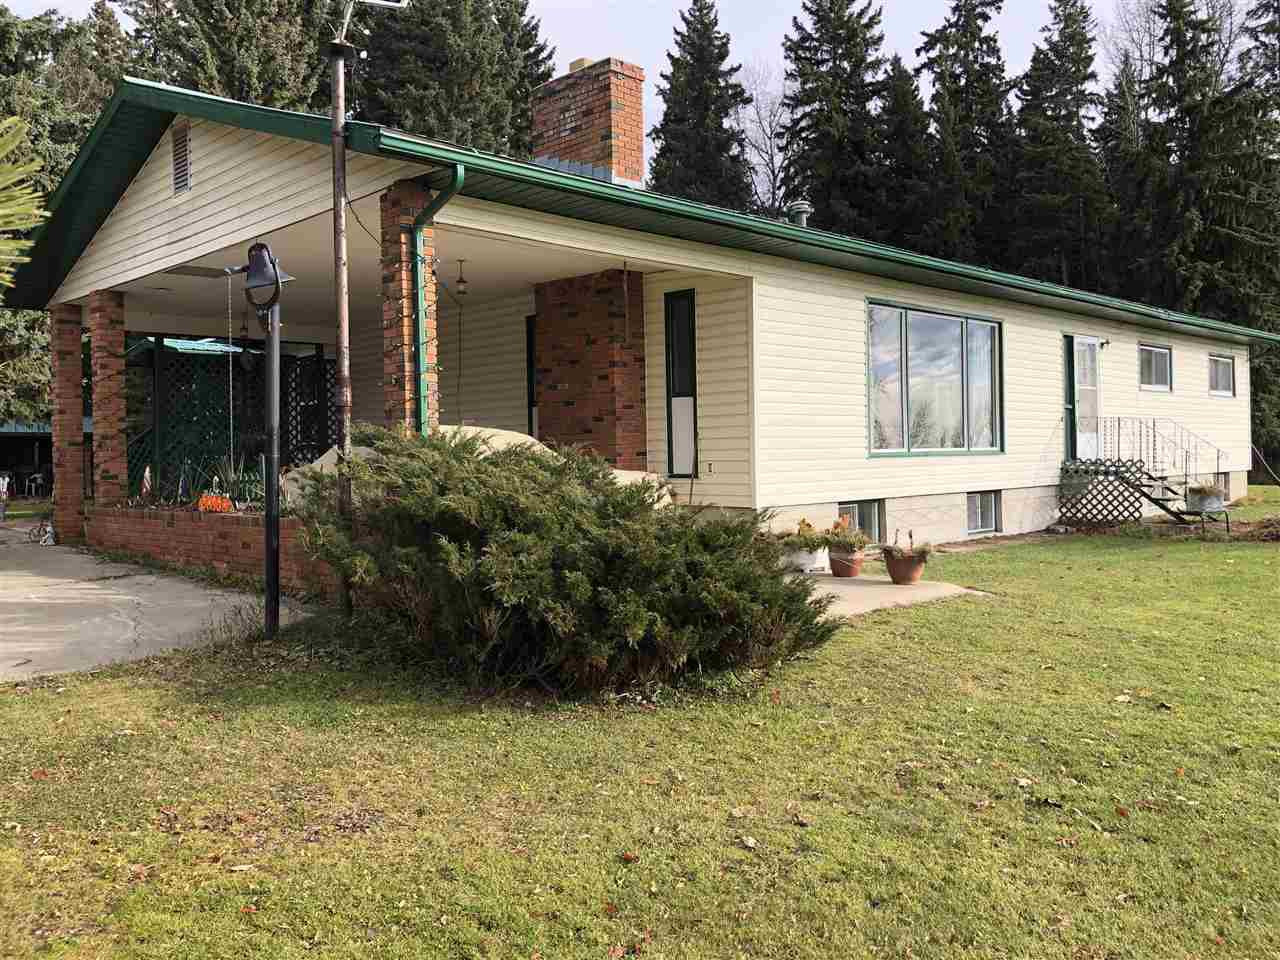 Main Photo: 1005 HWY 663: Rural Westlock County House for sale : MLS®# E4178090